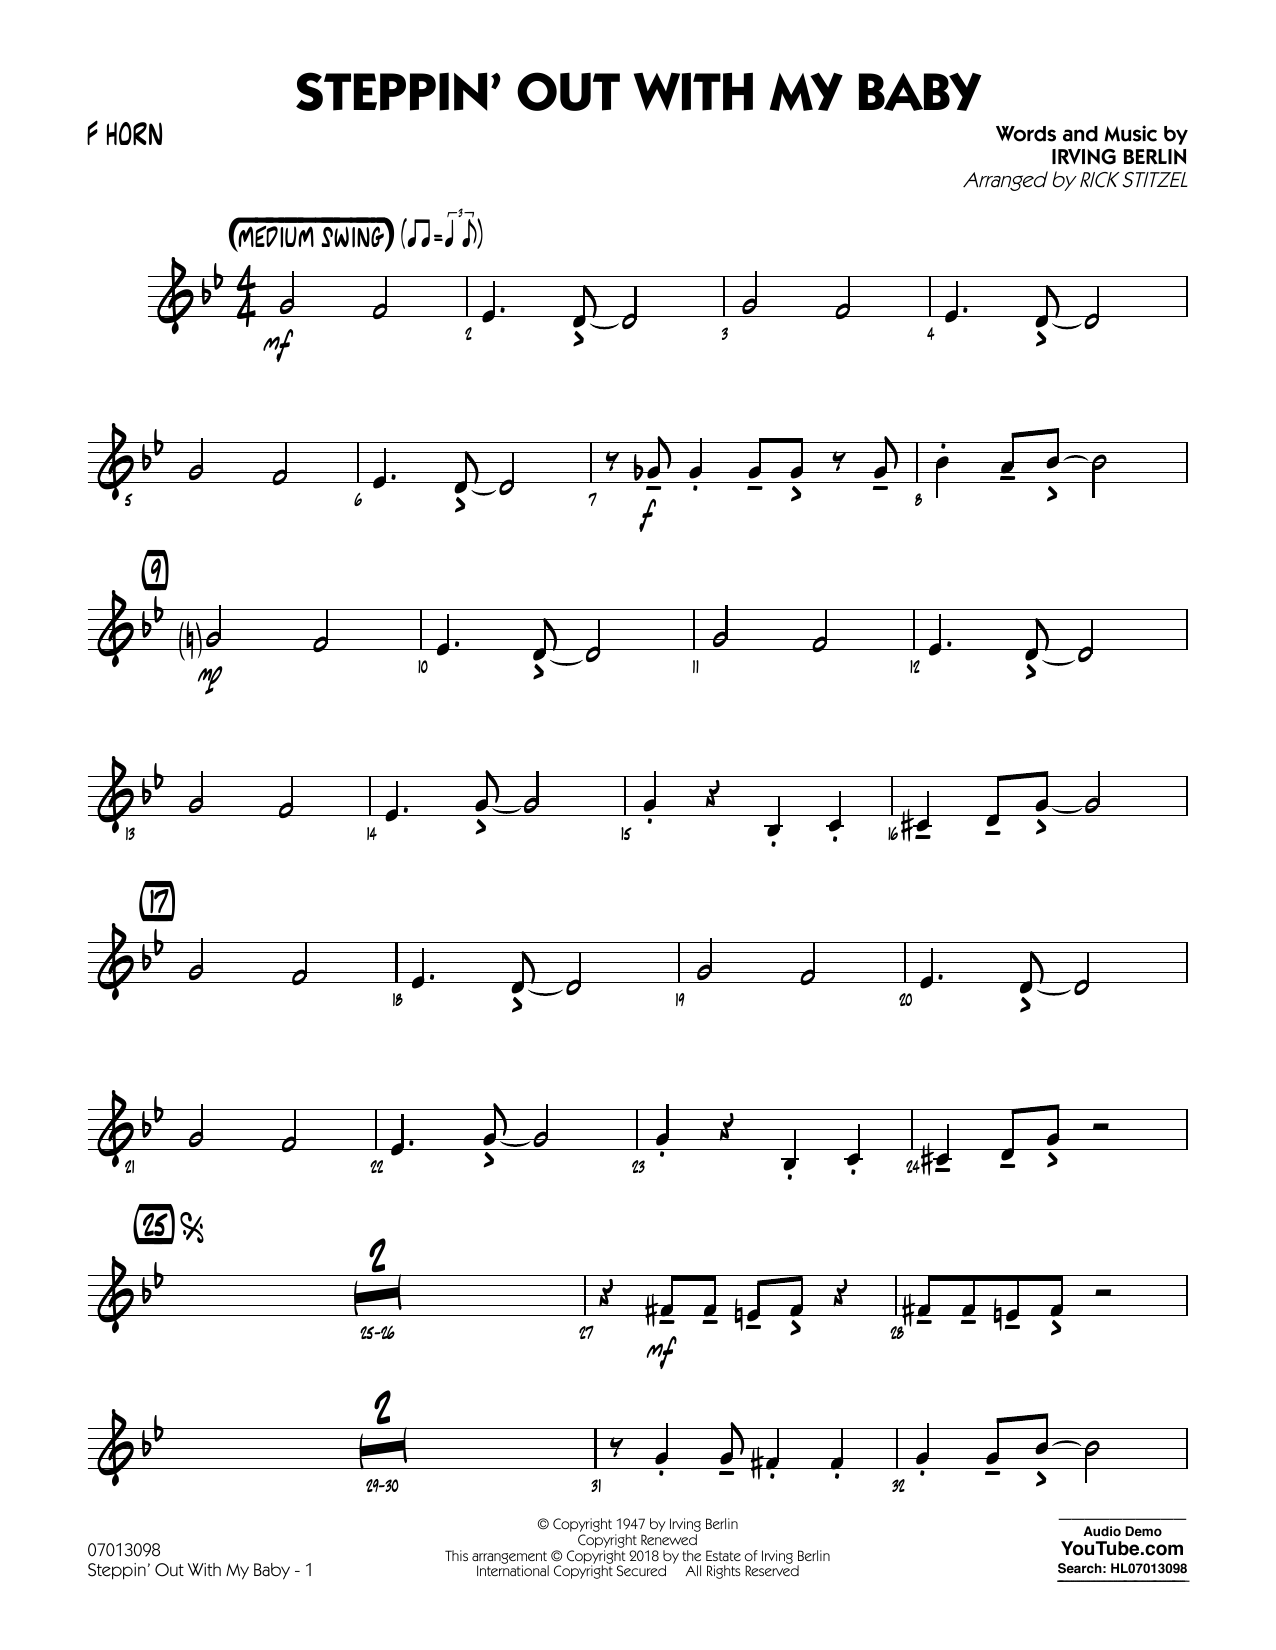 Rick Stitzel Steppin' Out with My Baby - F Horn sheet music notes printable PDF score